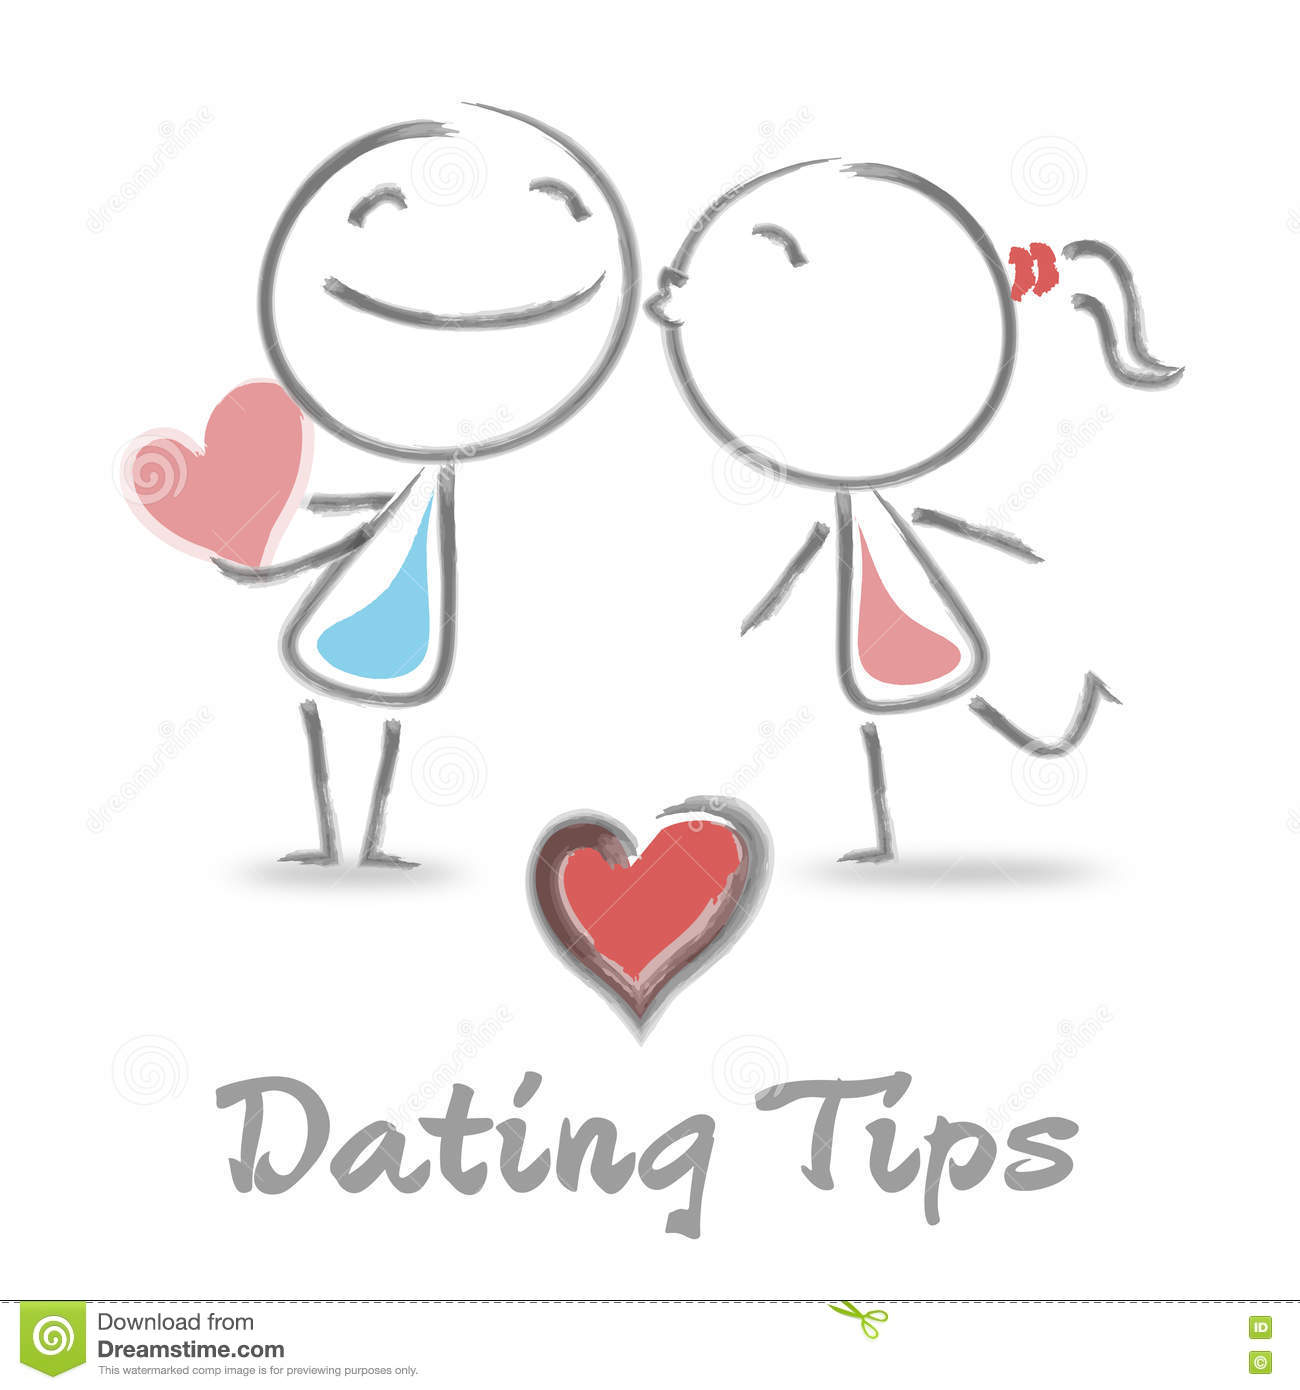 Love tips dating